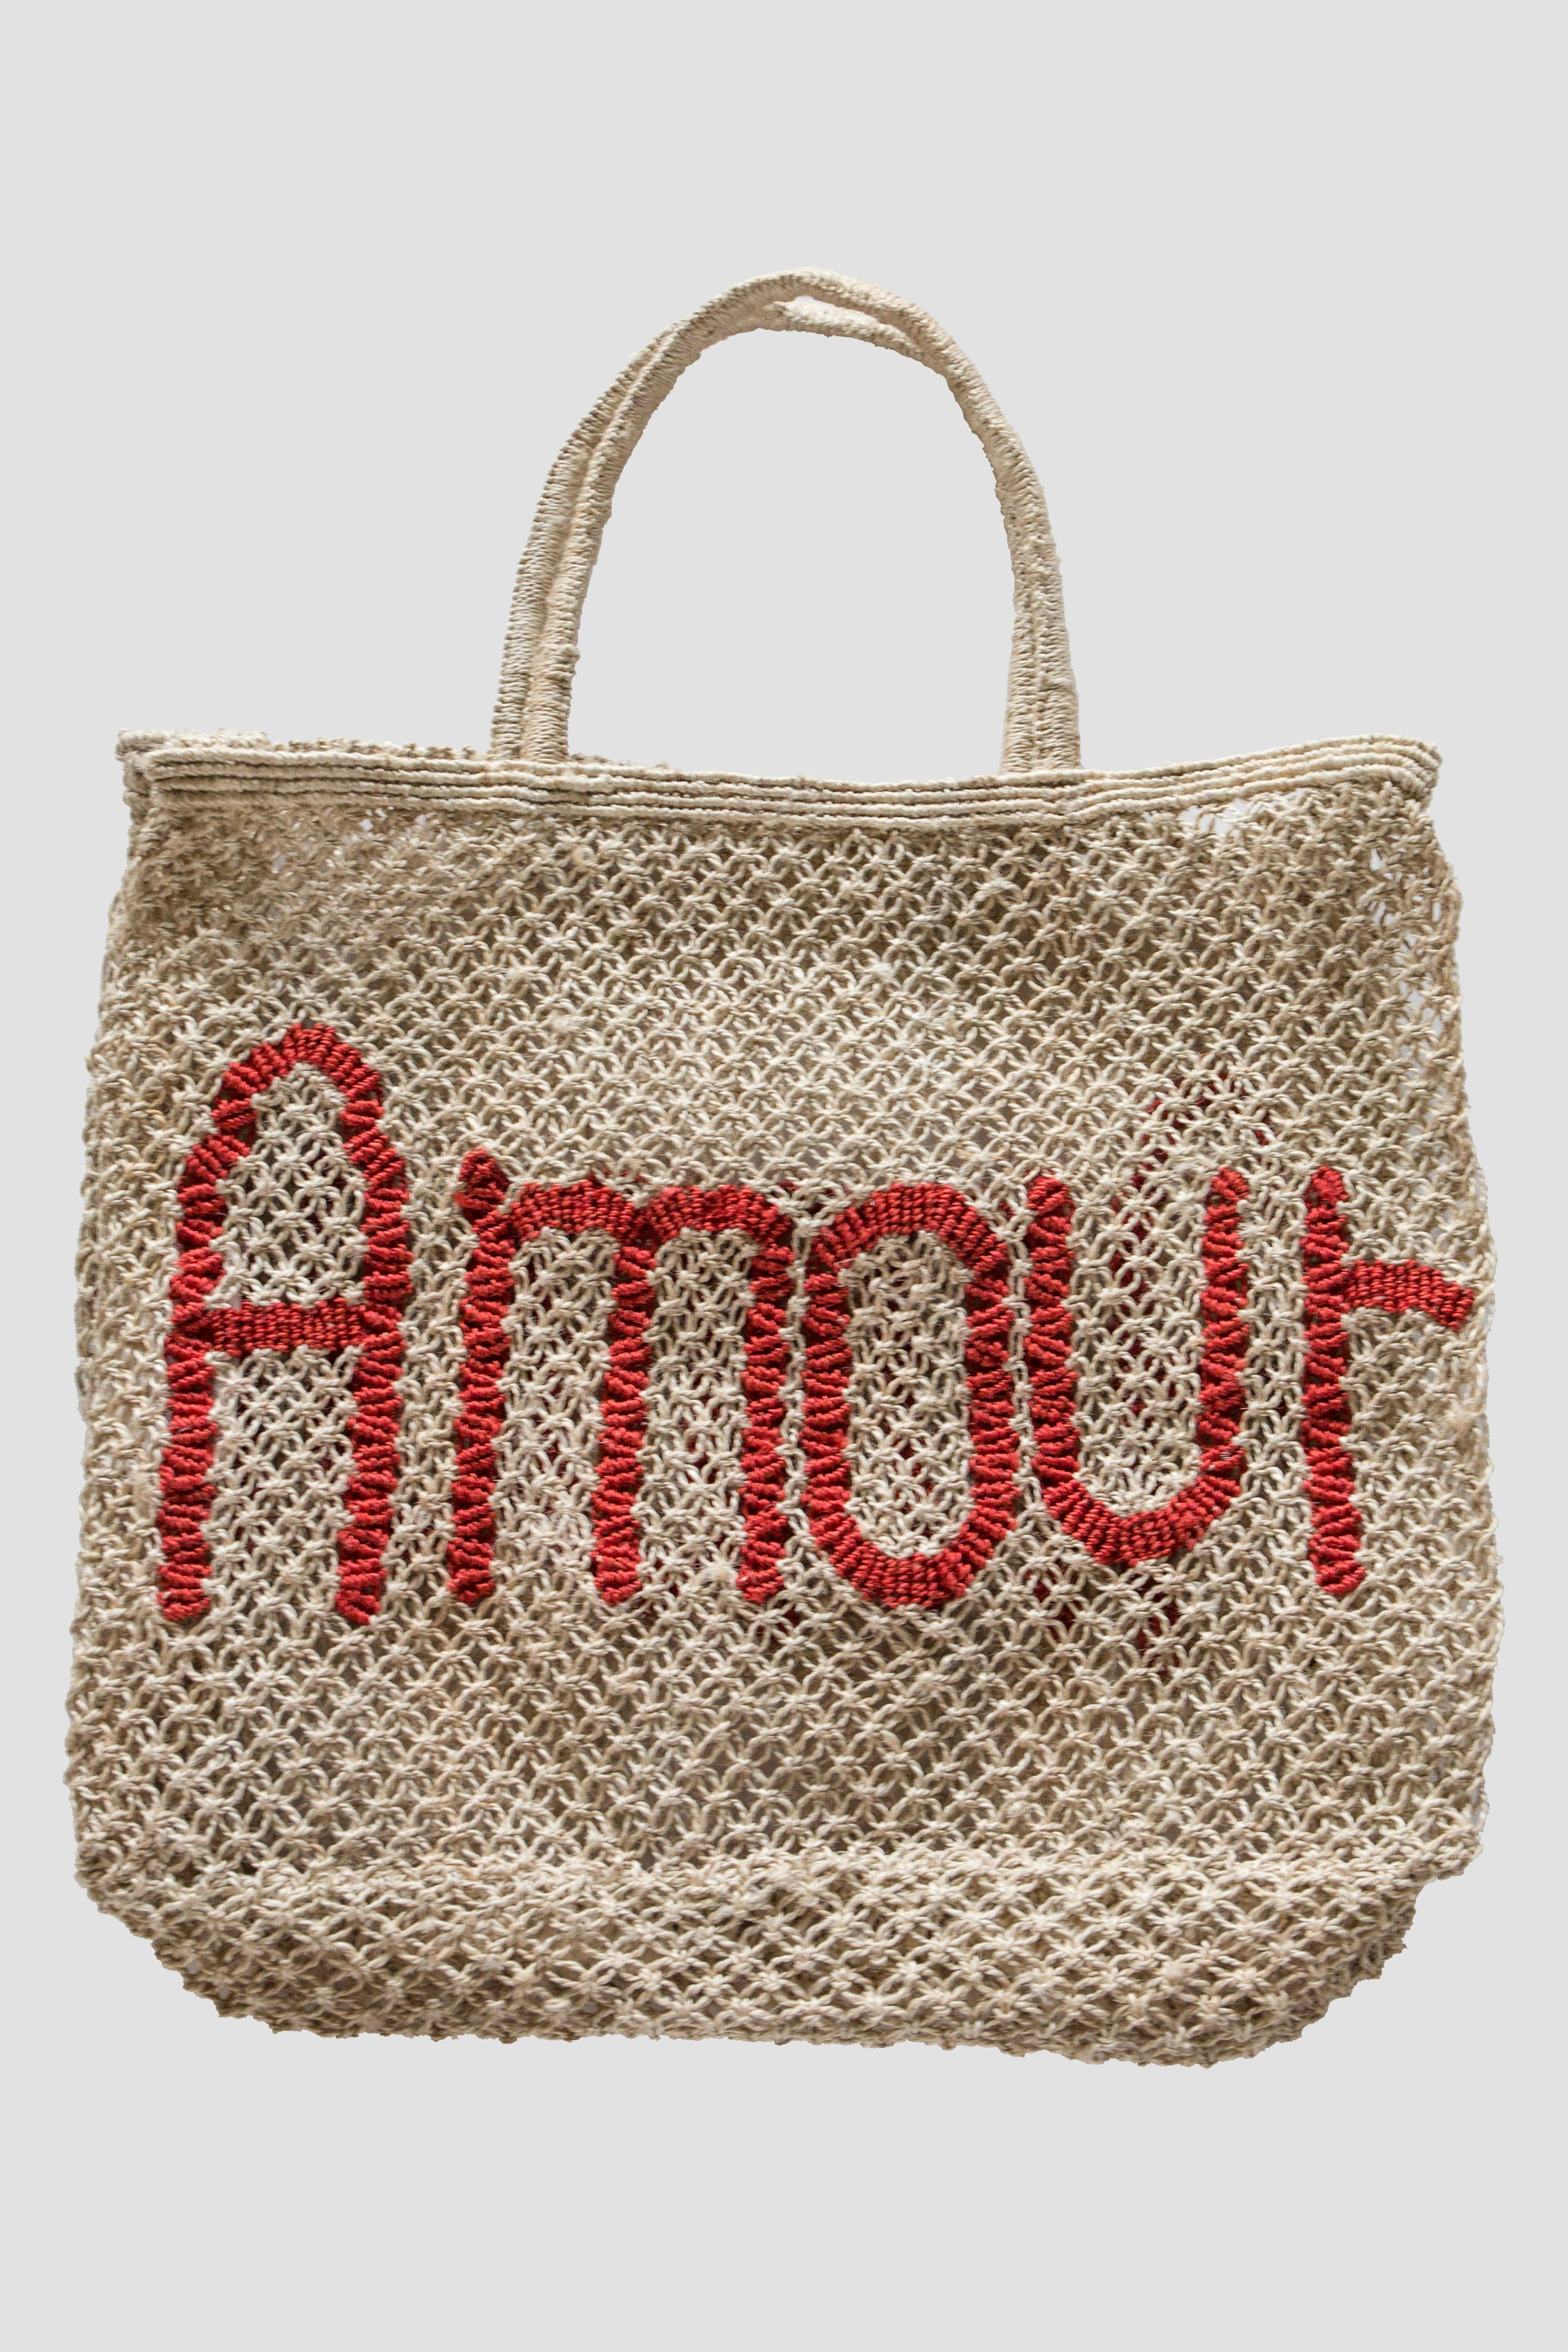 Amour Jute Bag - Nat/Red